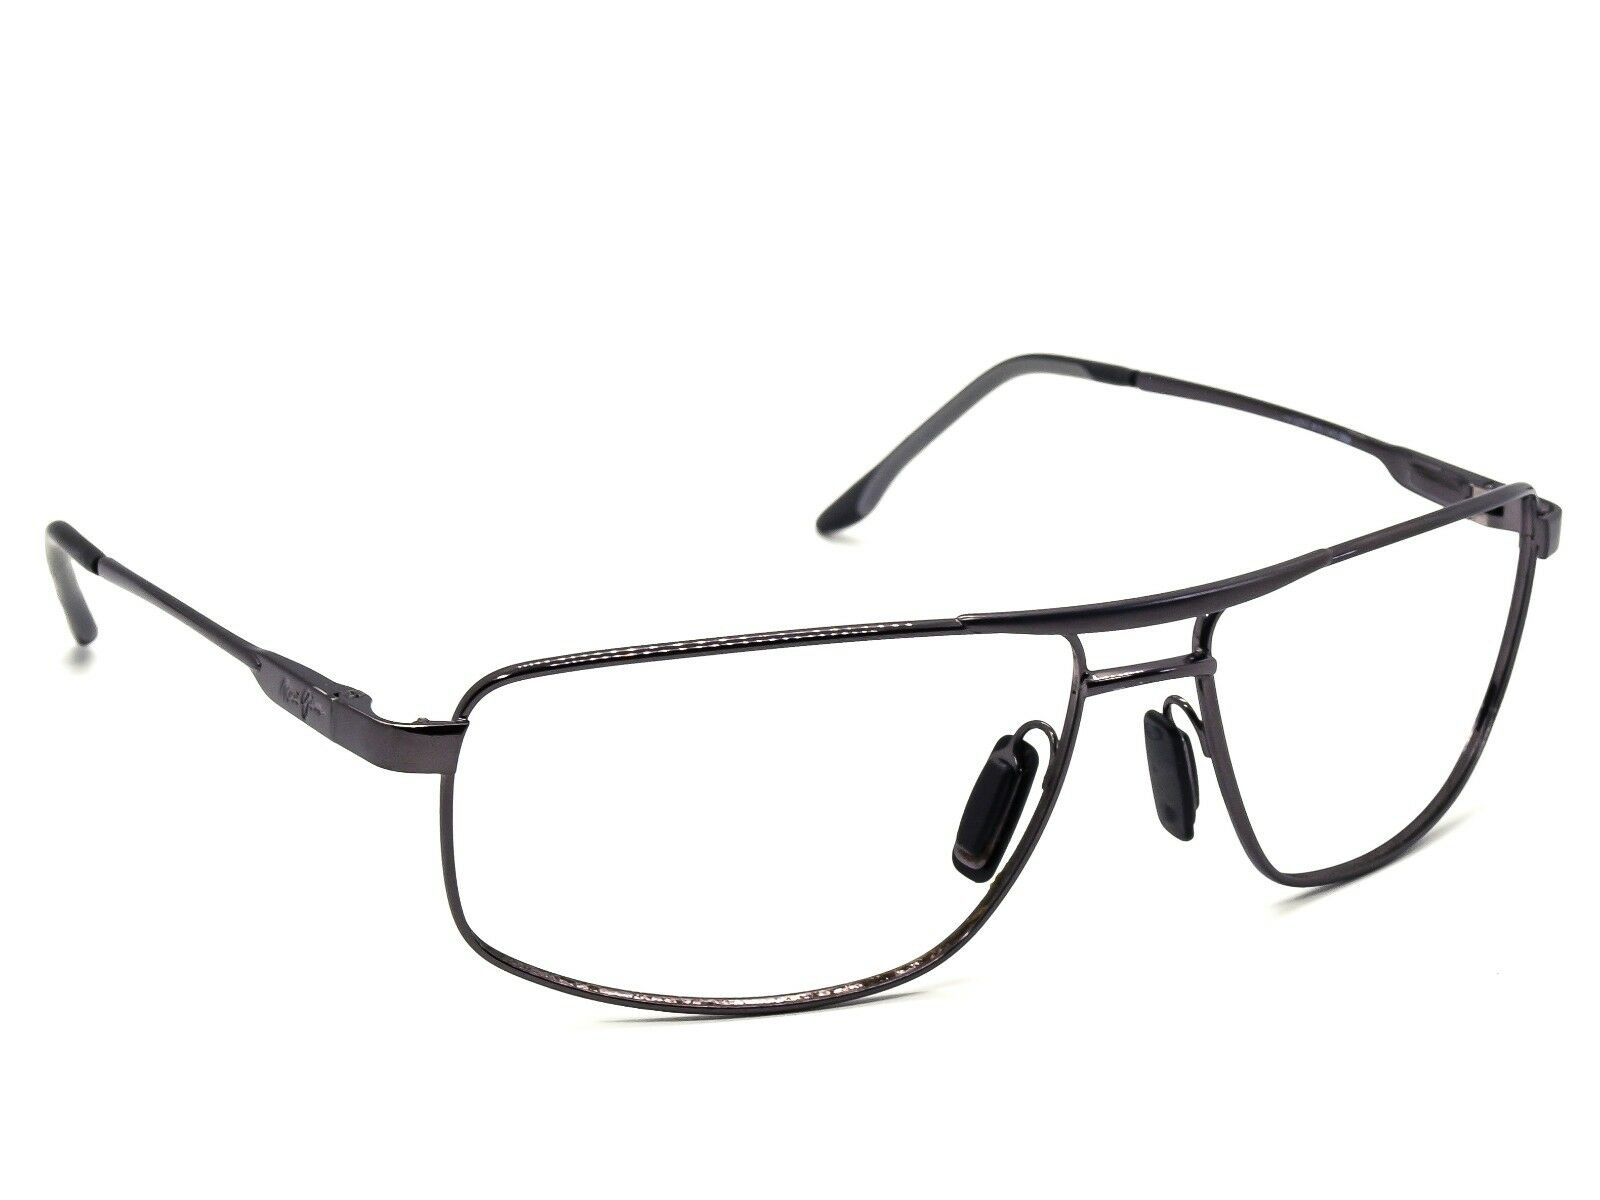 Maui Jim Kapena MJ-207-02 Sunglasses Frame Only